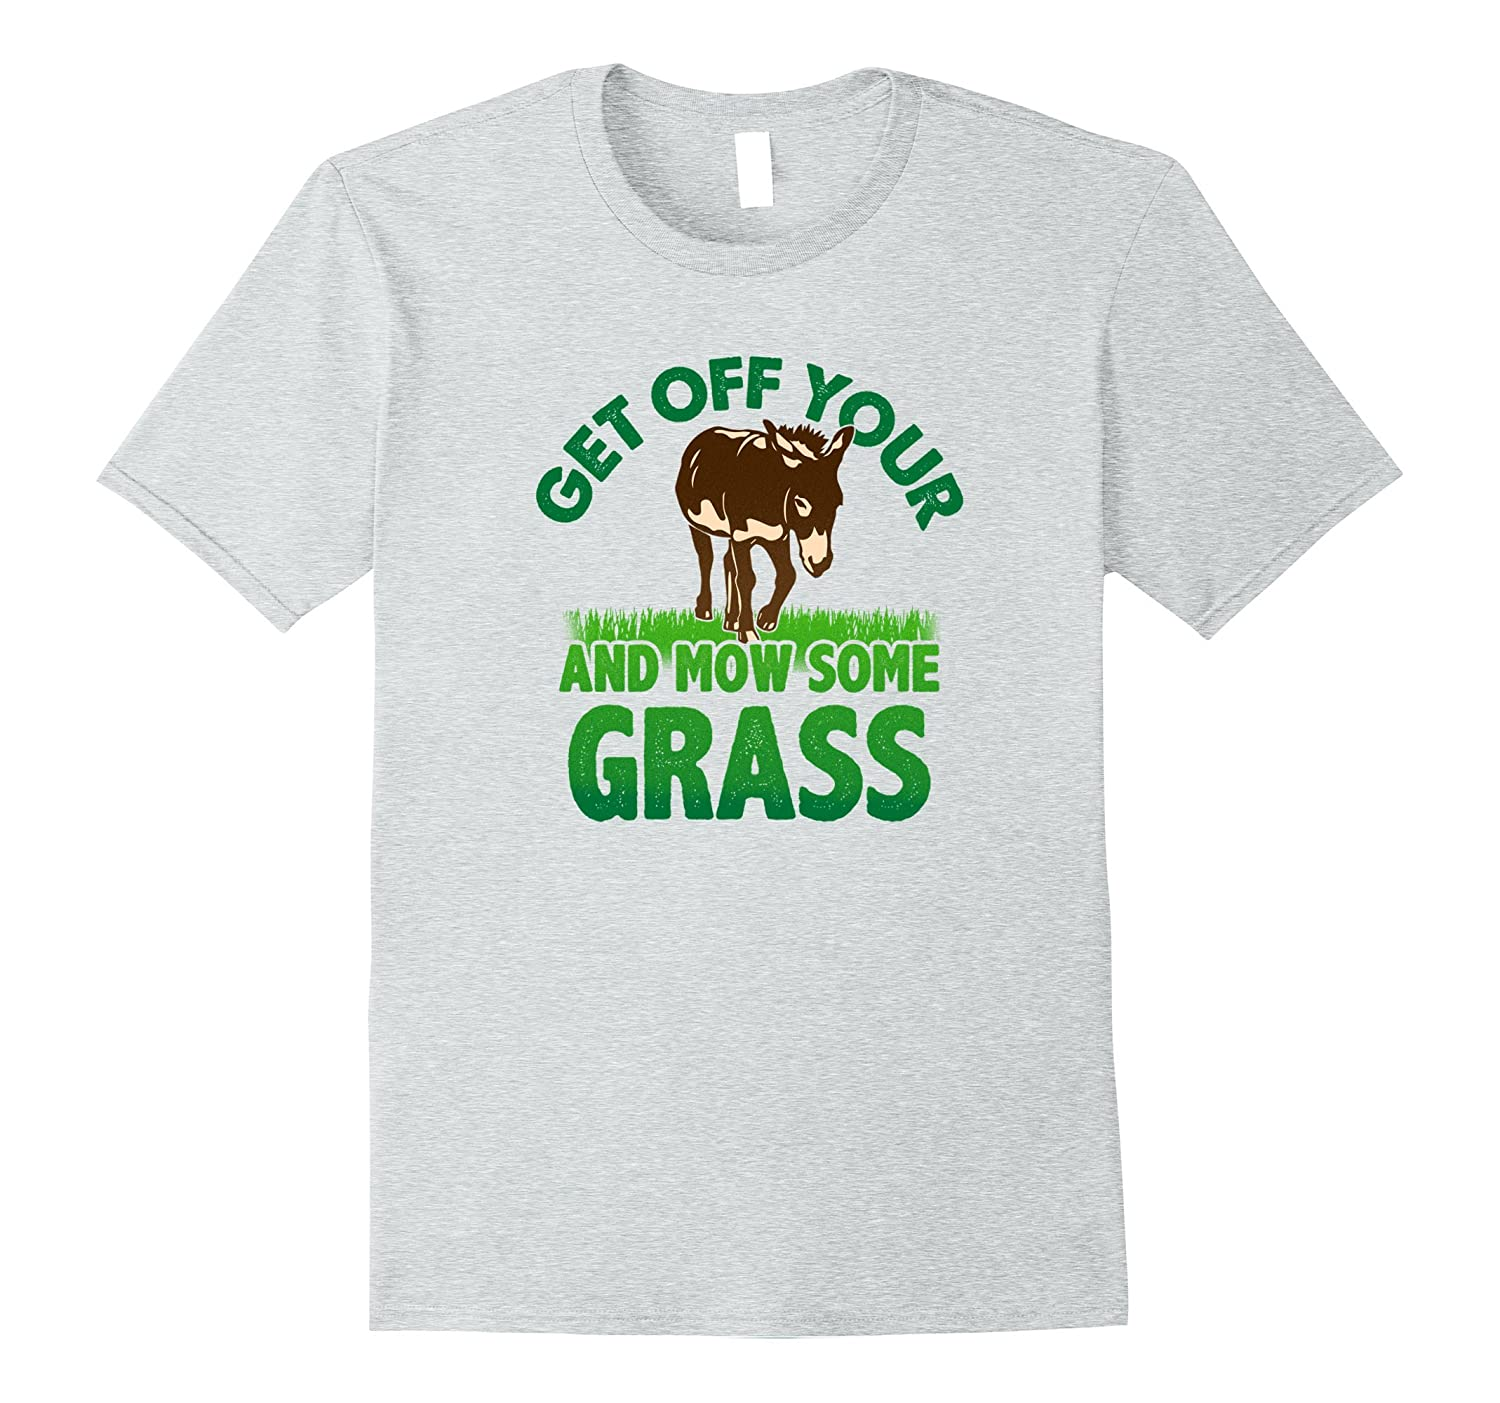 861a2b40e Mowing T-Shirts: Get Up and Mow Some Grass-CL – Colamaga